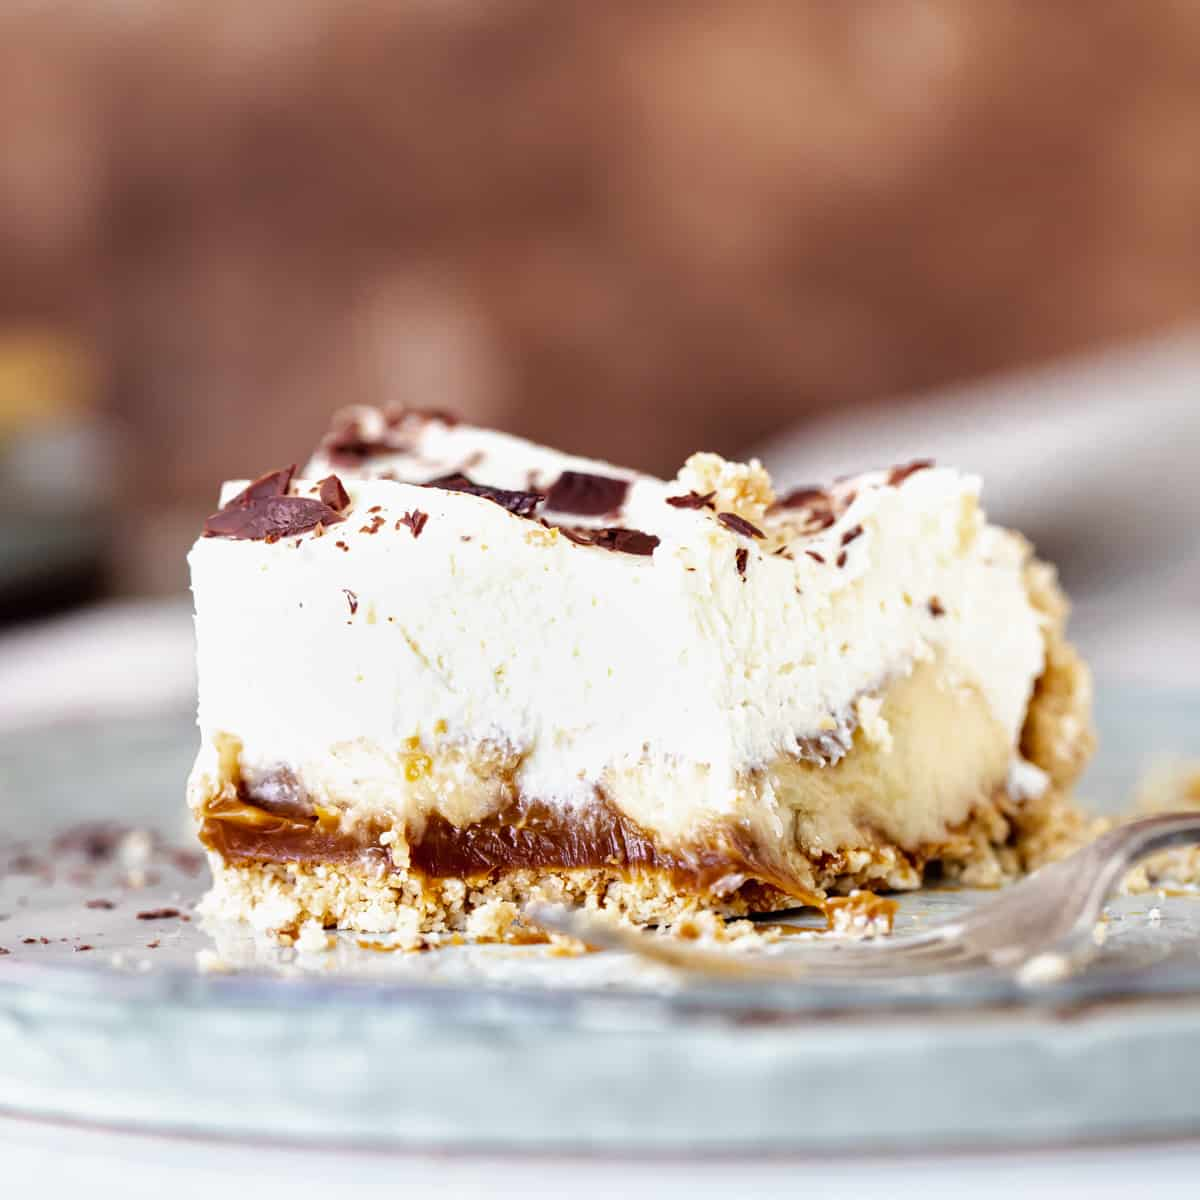 Straight on view of eaten slice of creamy banoffee pie on grey plate, brown background